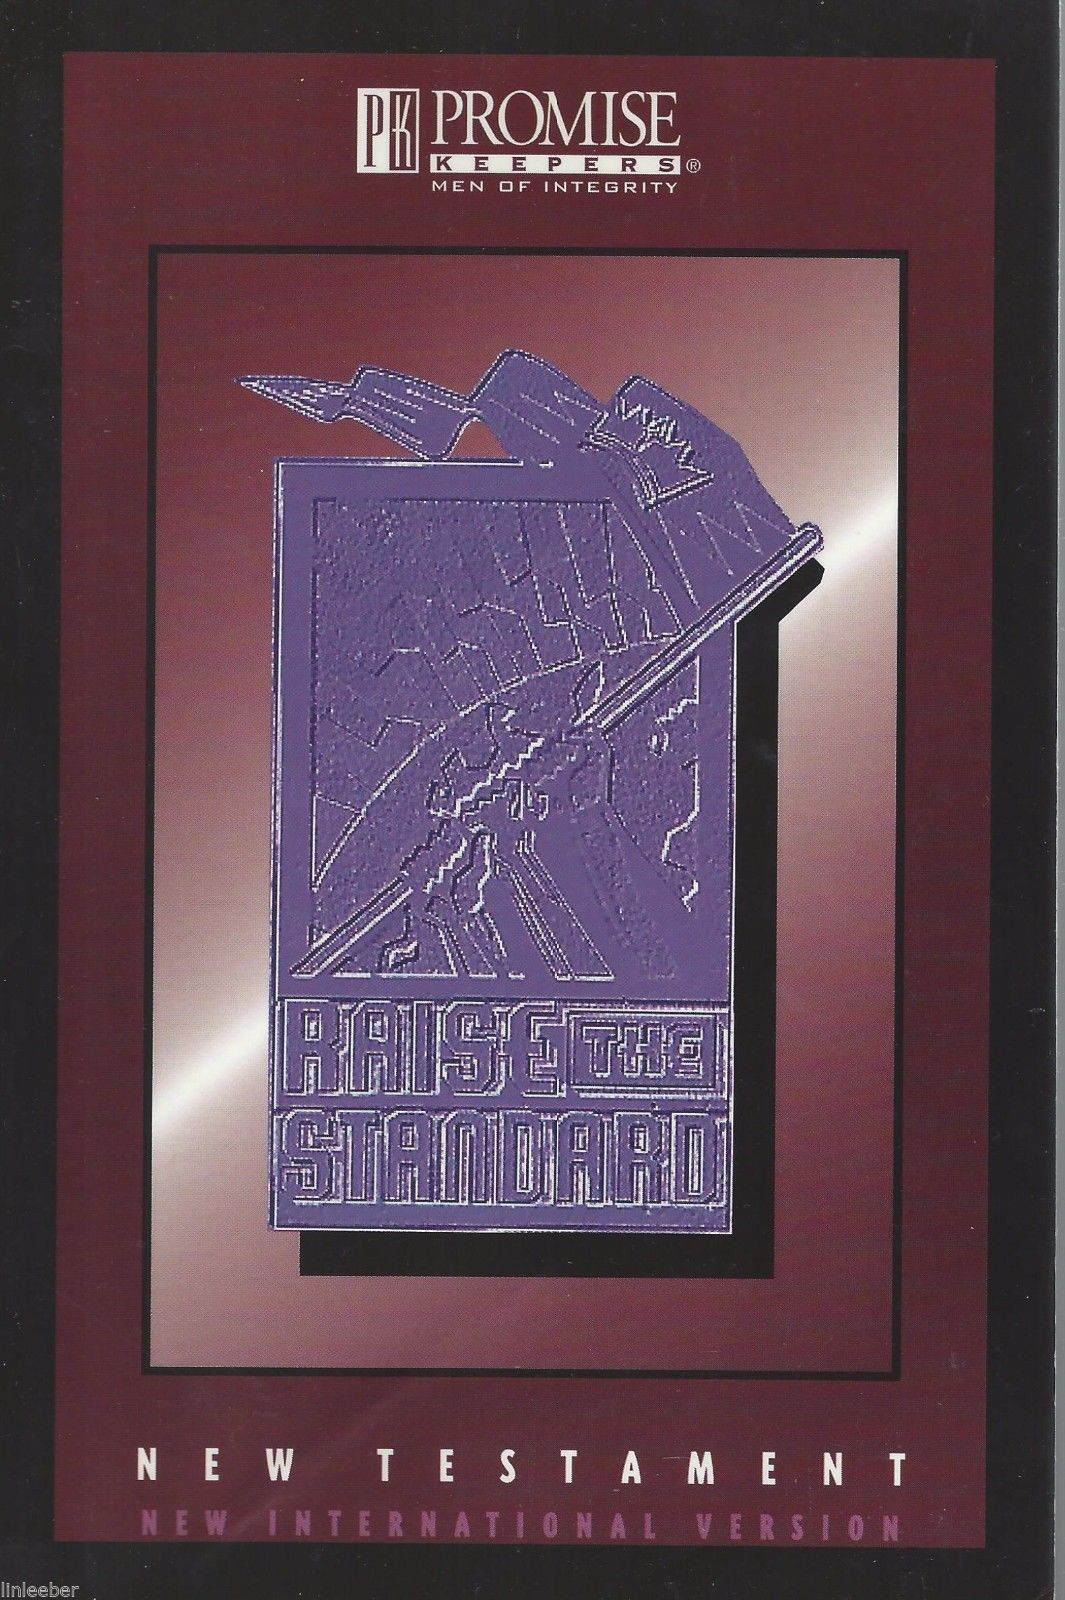 Promise Keepers New Testament Raise The Standard By Promise Keepers(Author);1995